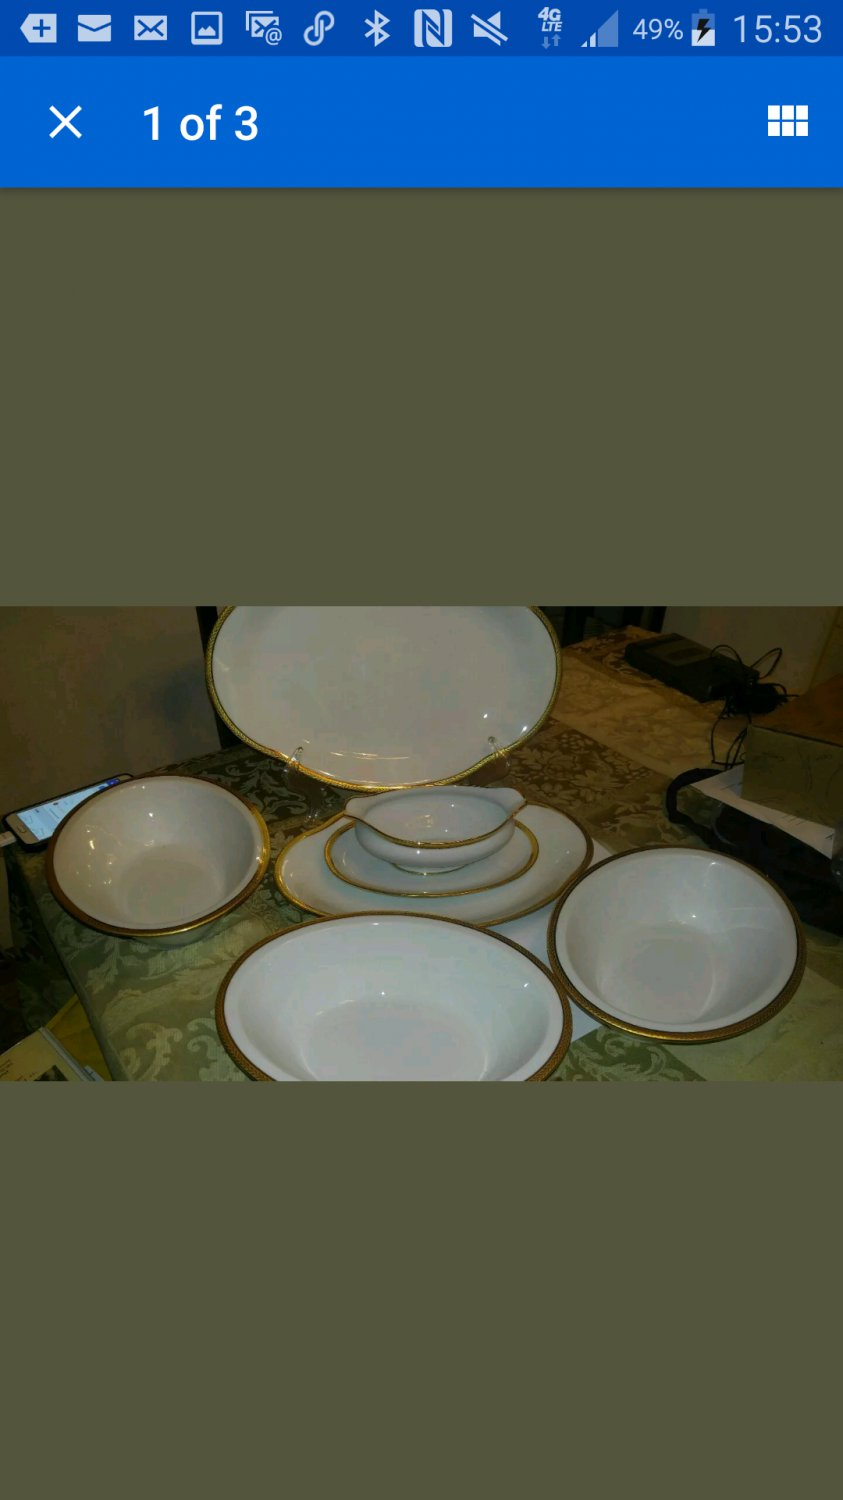 Paul Pastaud Limoges White & gold 12 pcs. SERVING dishes includes  3 oval bowls 1 gravy , 2 platter